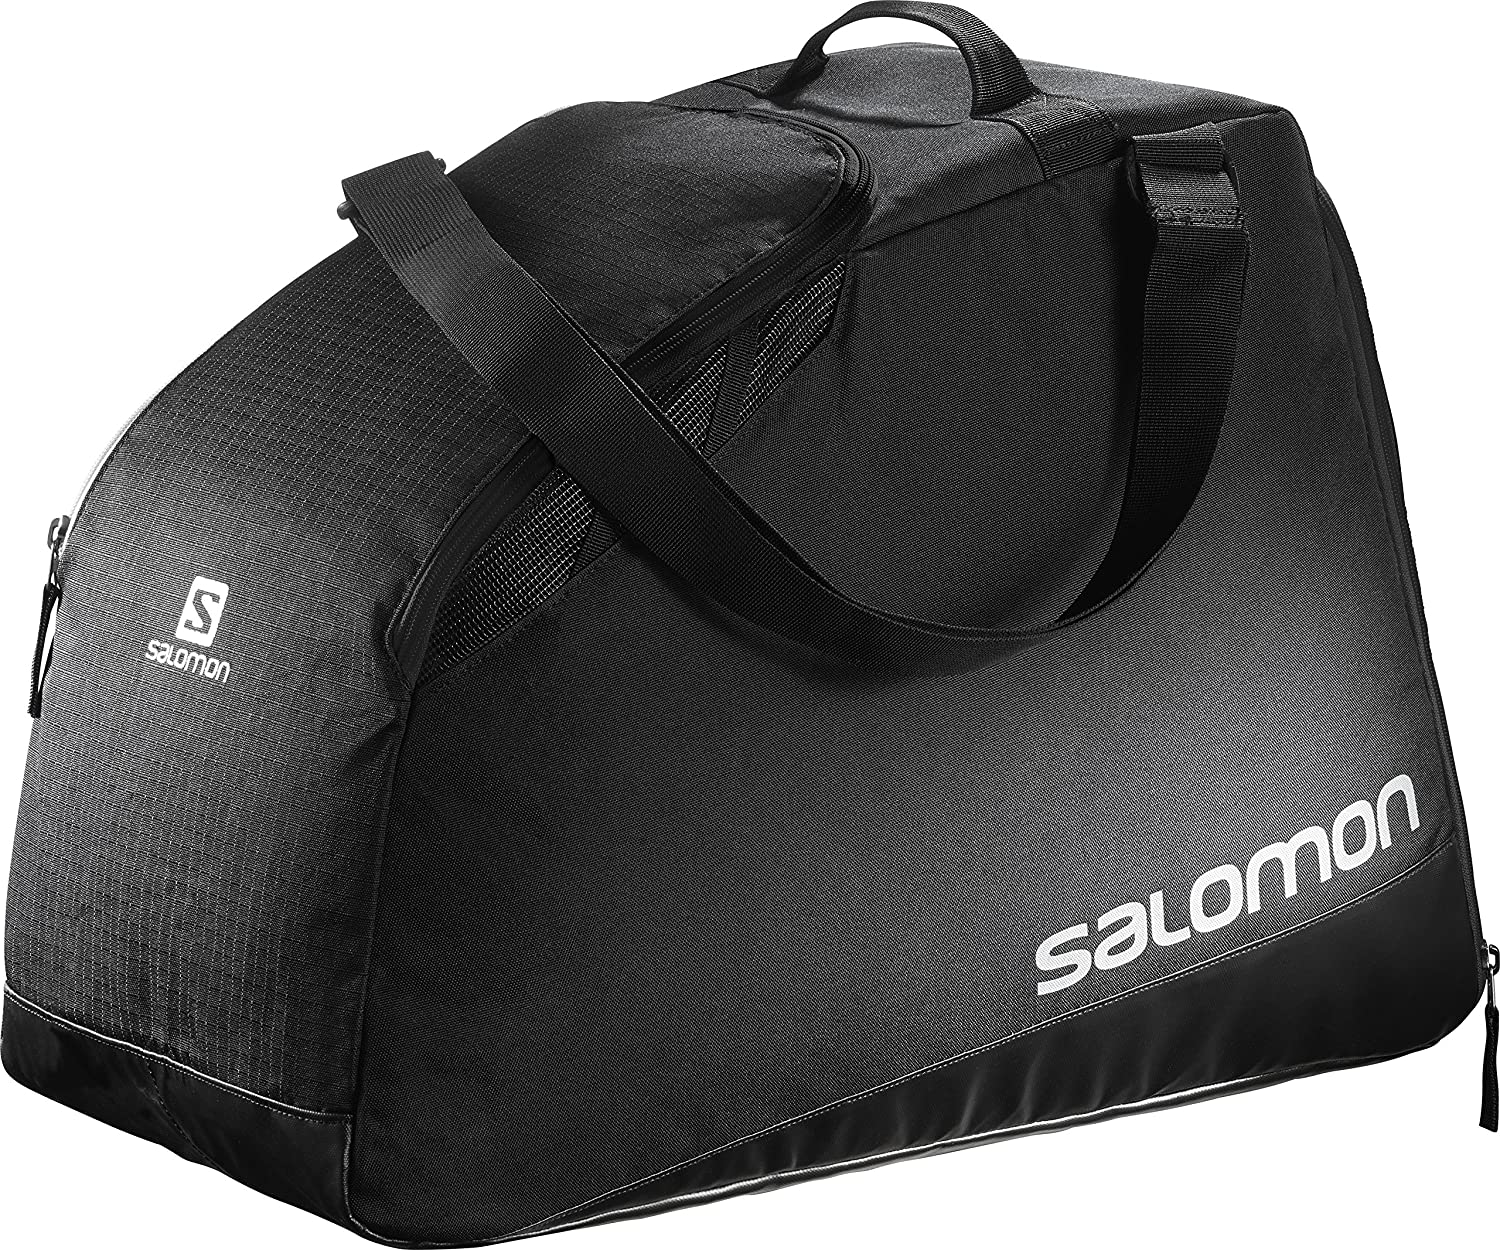 02f5bc0809a1 Salomon Extend Max Gearbag Ski Bag